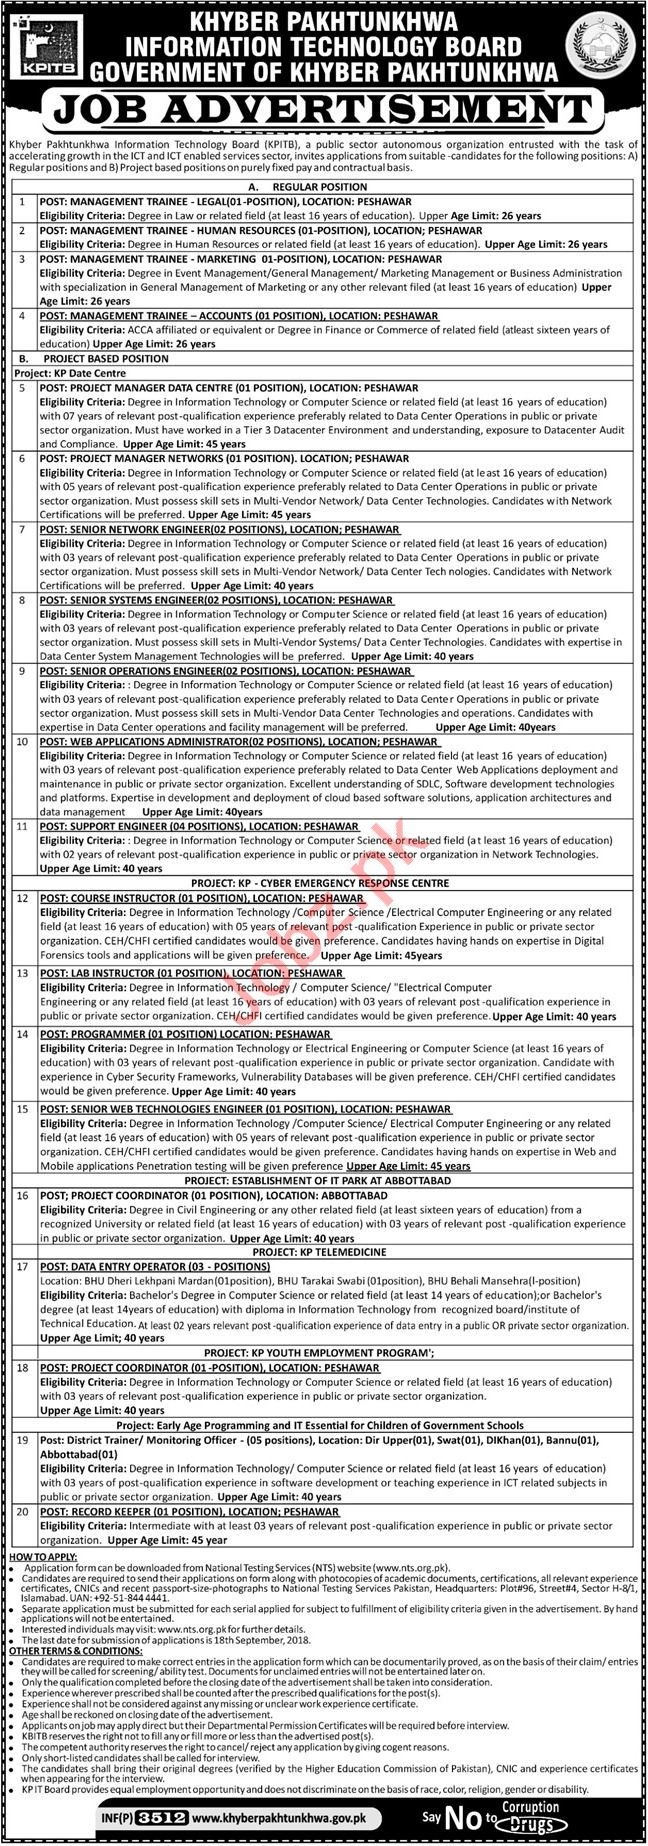 KPK Information Technology Board KPITB Careers